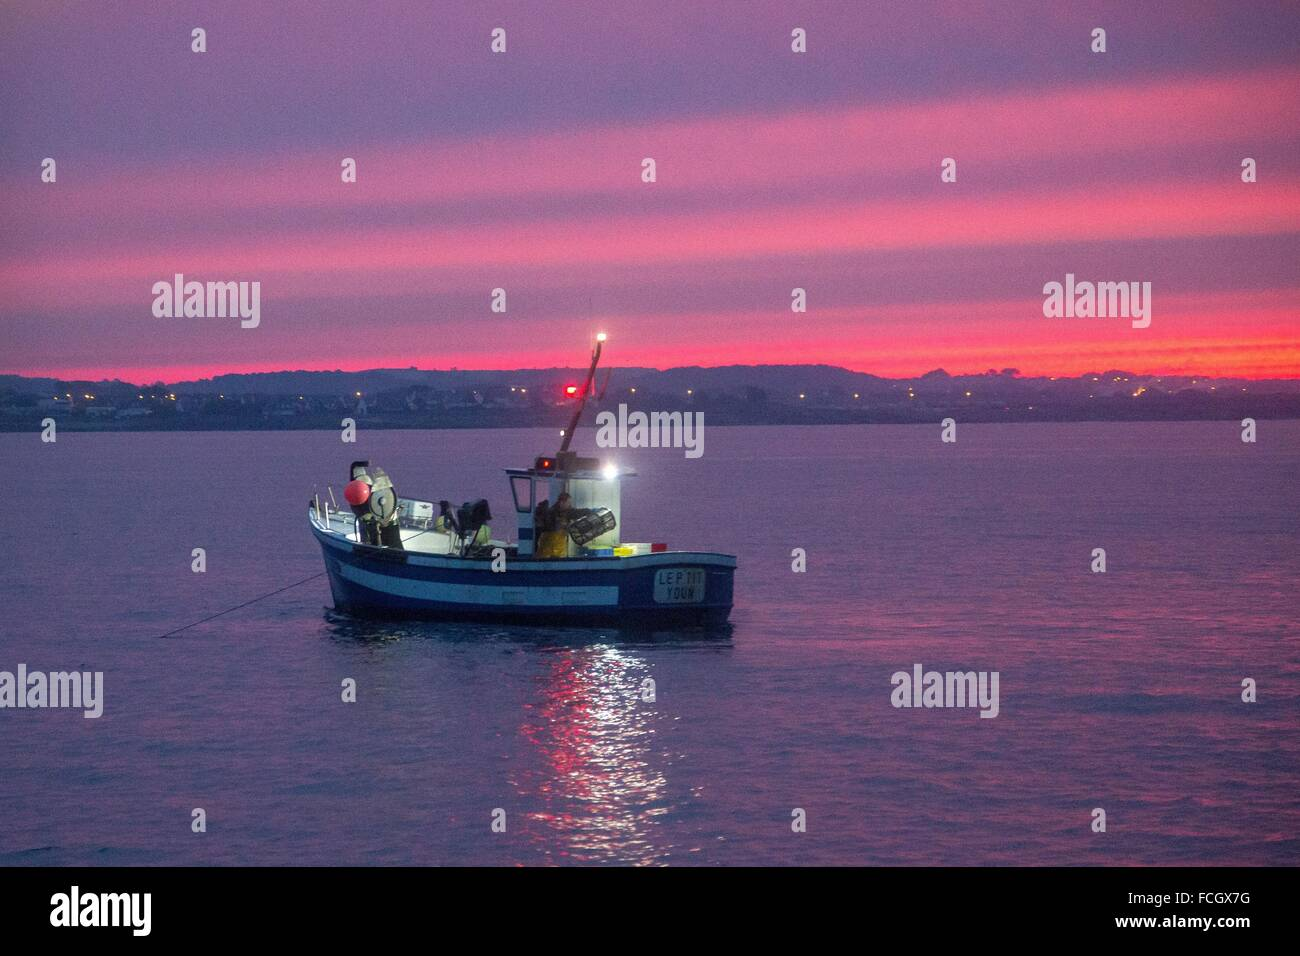 SHRIMP FISHER, FISHING AT SEA, SHRIMP TRAWLER AT DAWN OFF THE COAST OF LORIENT (56), BRITTANY, FRANCE - Stock Image